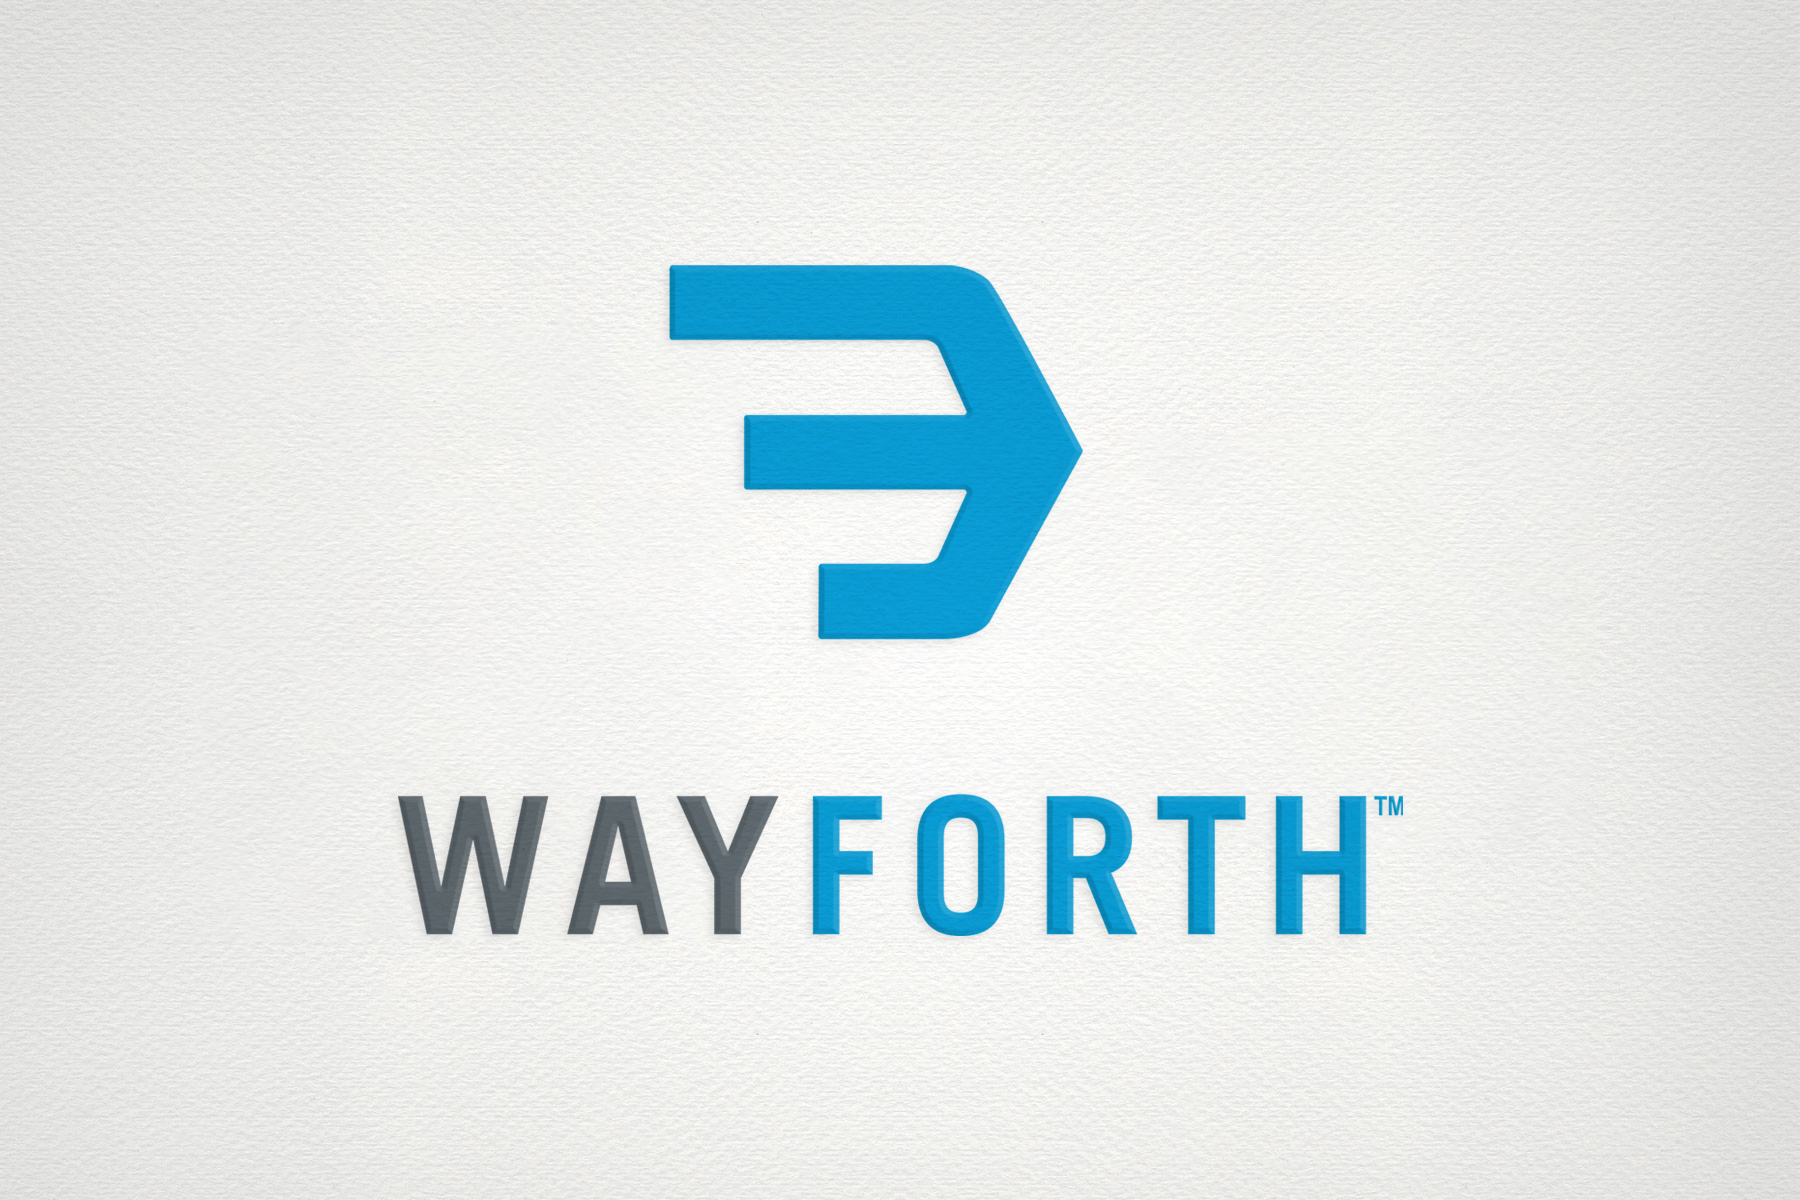 Logos Wayforth